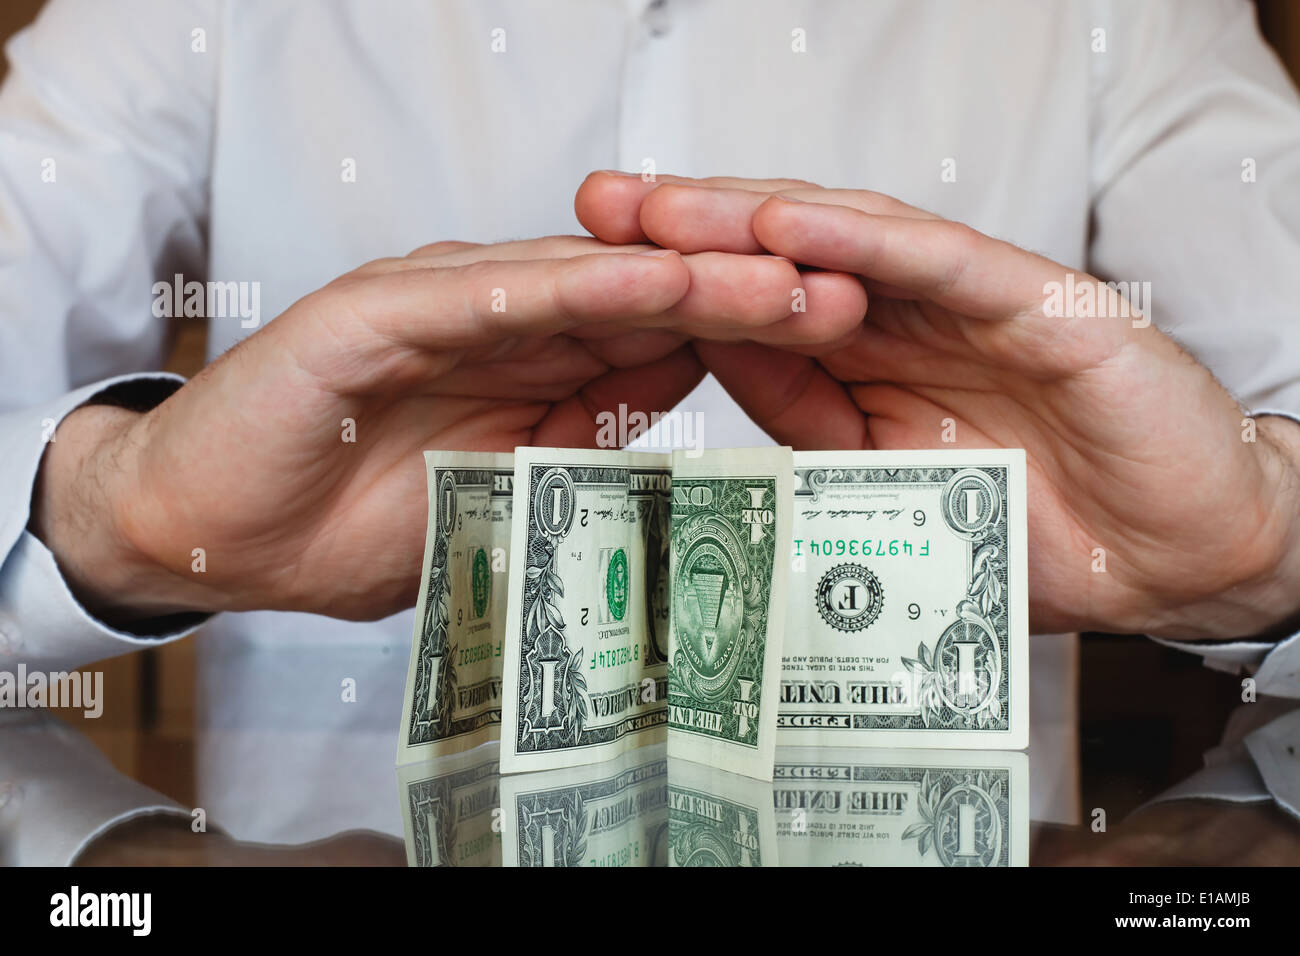 protect your money, inflation - Stock Image